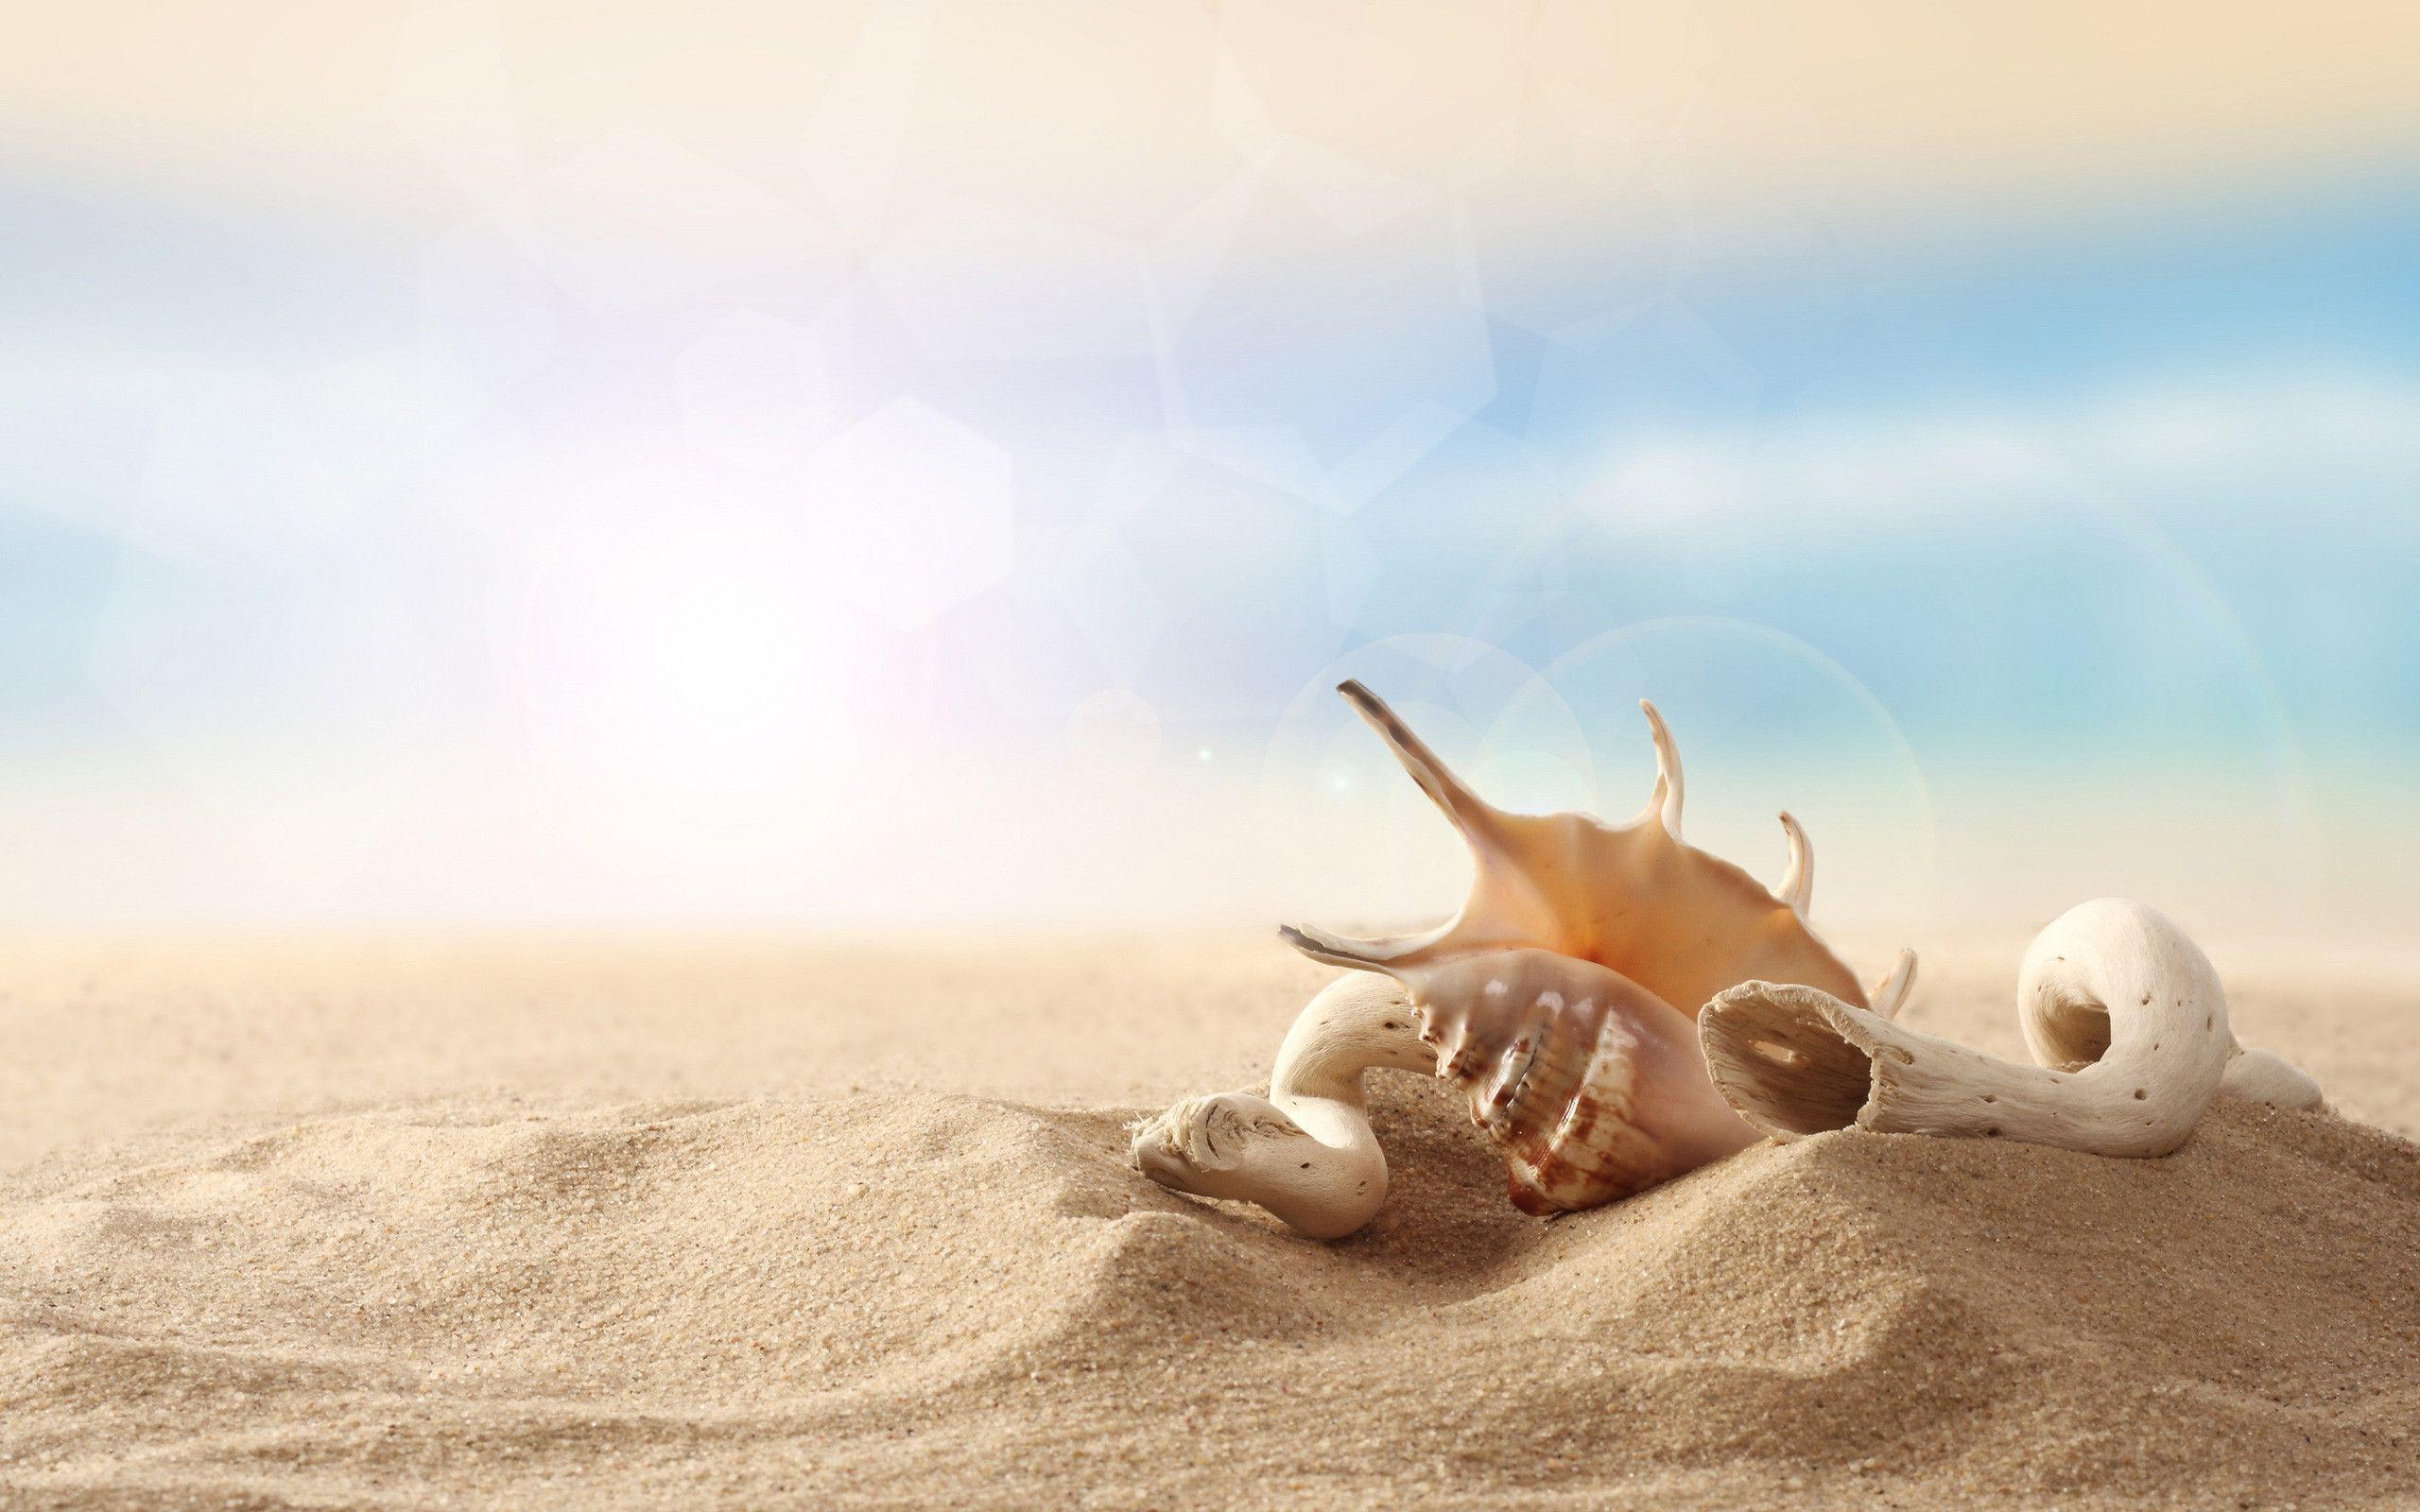 Download Seashell Sand Wallpapers 17111 2560x1600 px High